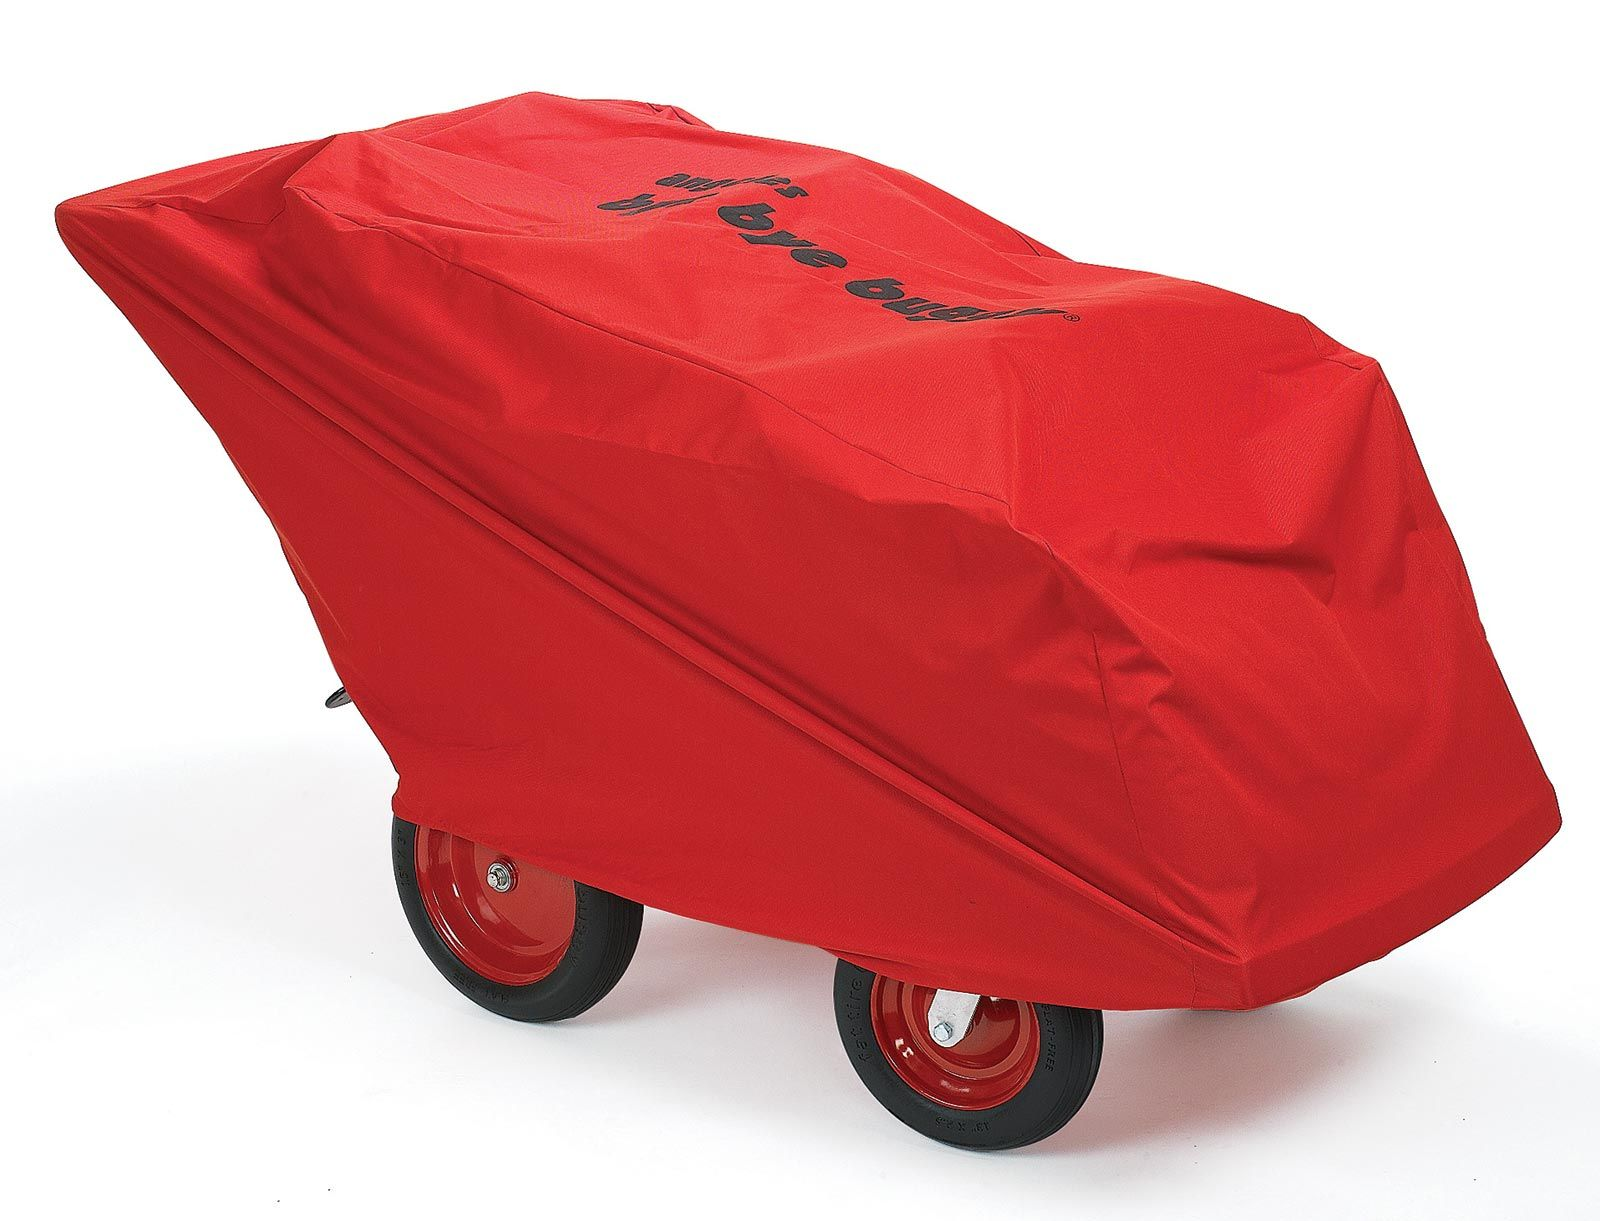 Remarkable Bye Bye Buggy 6 Passenger Cover Red Strollers Buggies Gmtry Best Dining Table And Chair Ideas Images Gmtryco